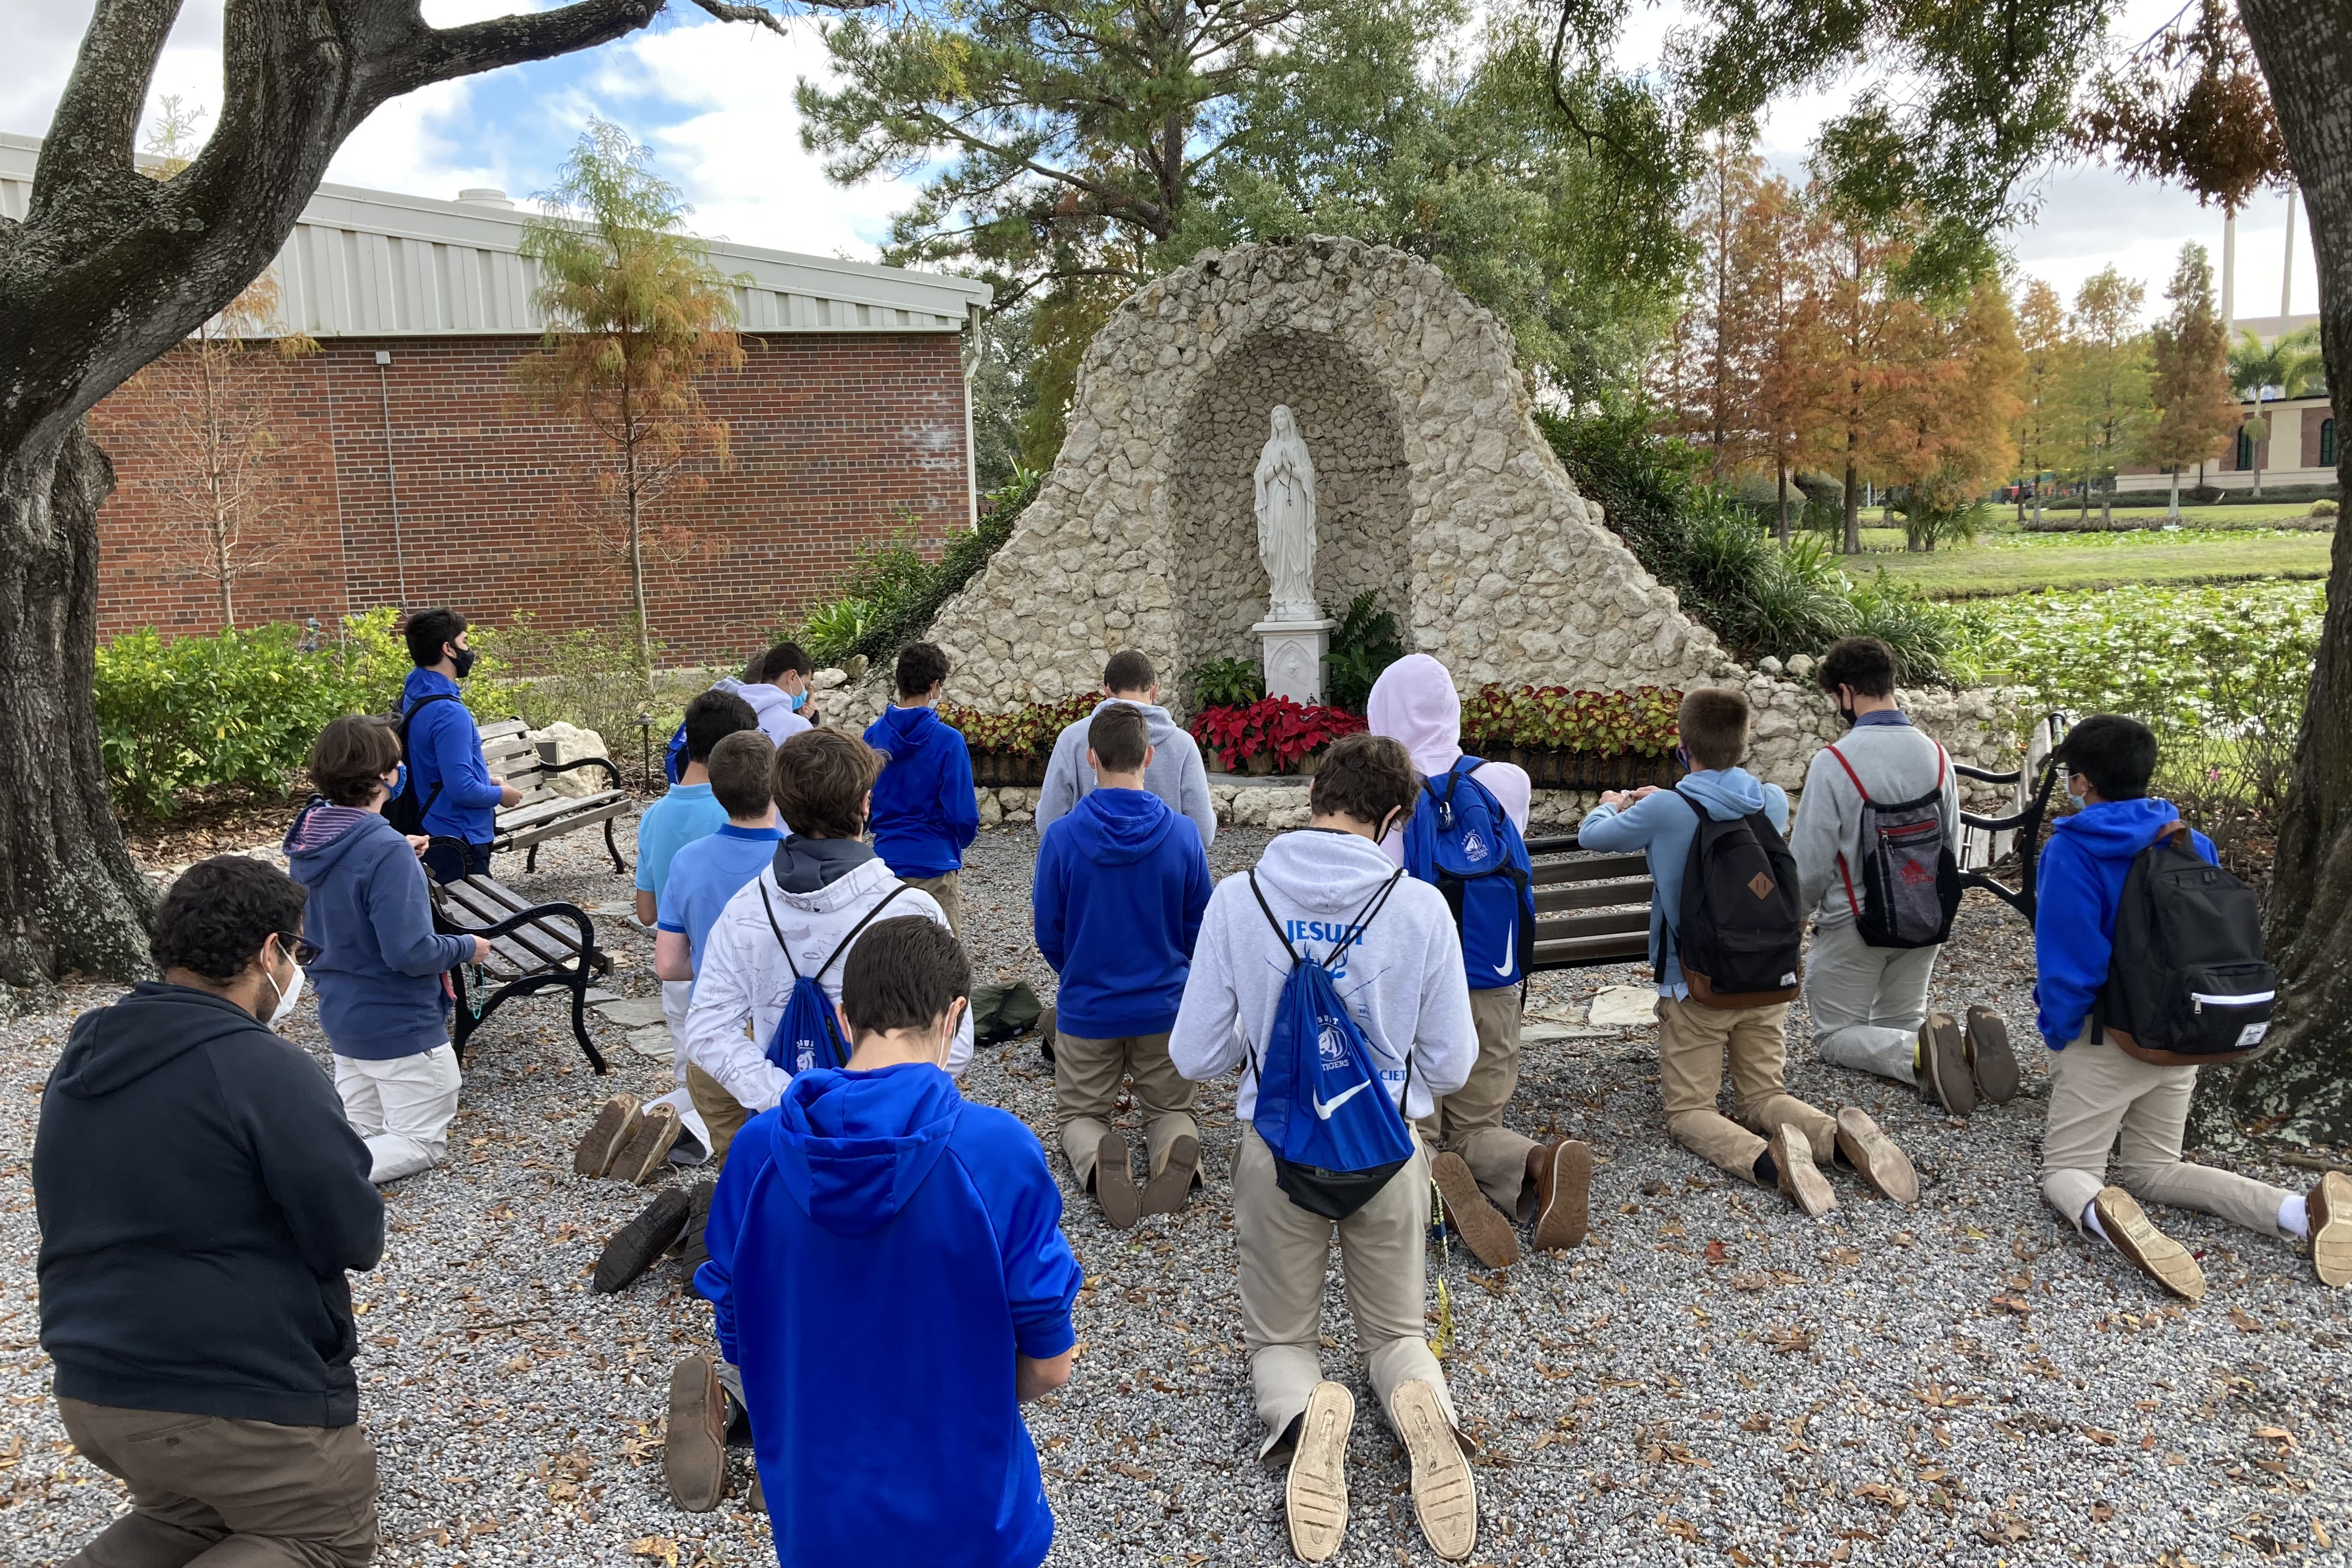 A group of students from Jesuit High School, an all-boys school in Tampa, Florida, praying in front of a statue of Our Lady.